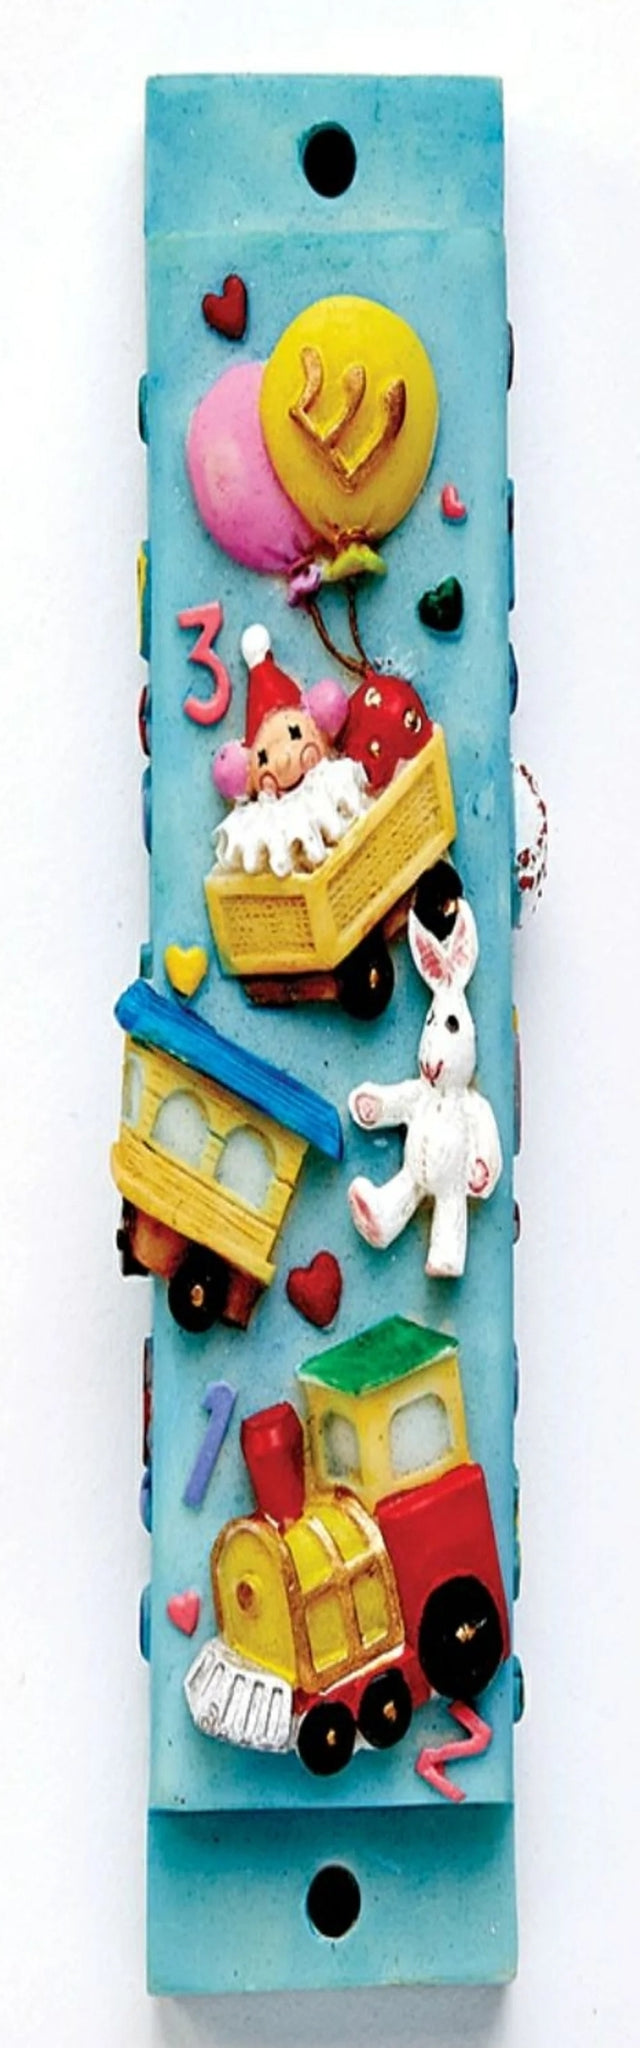 Train Design Mezuzah for Kids Room